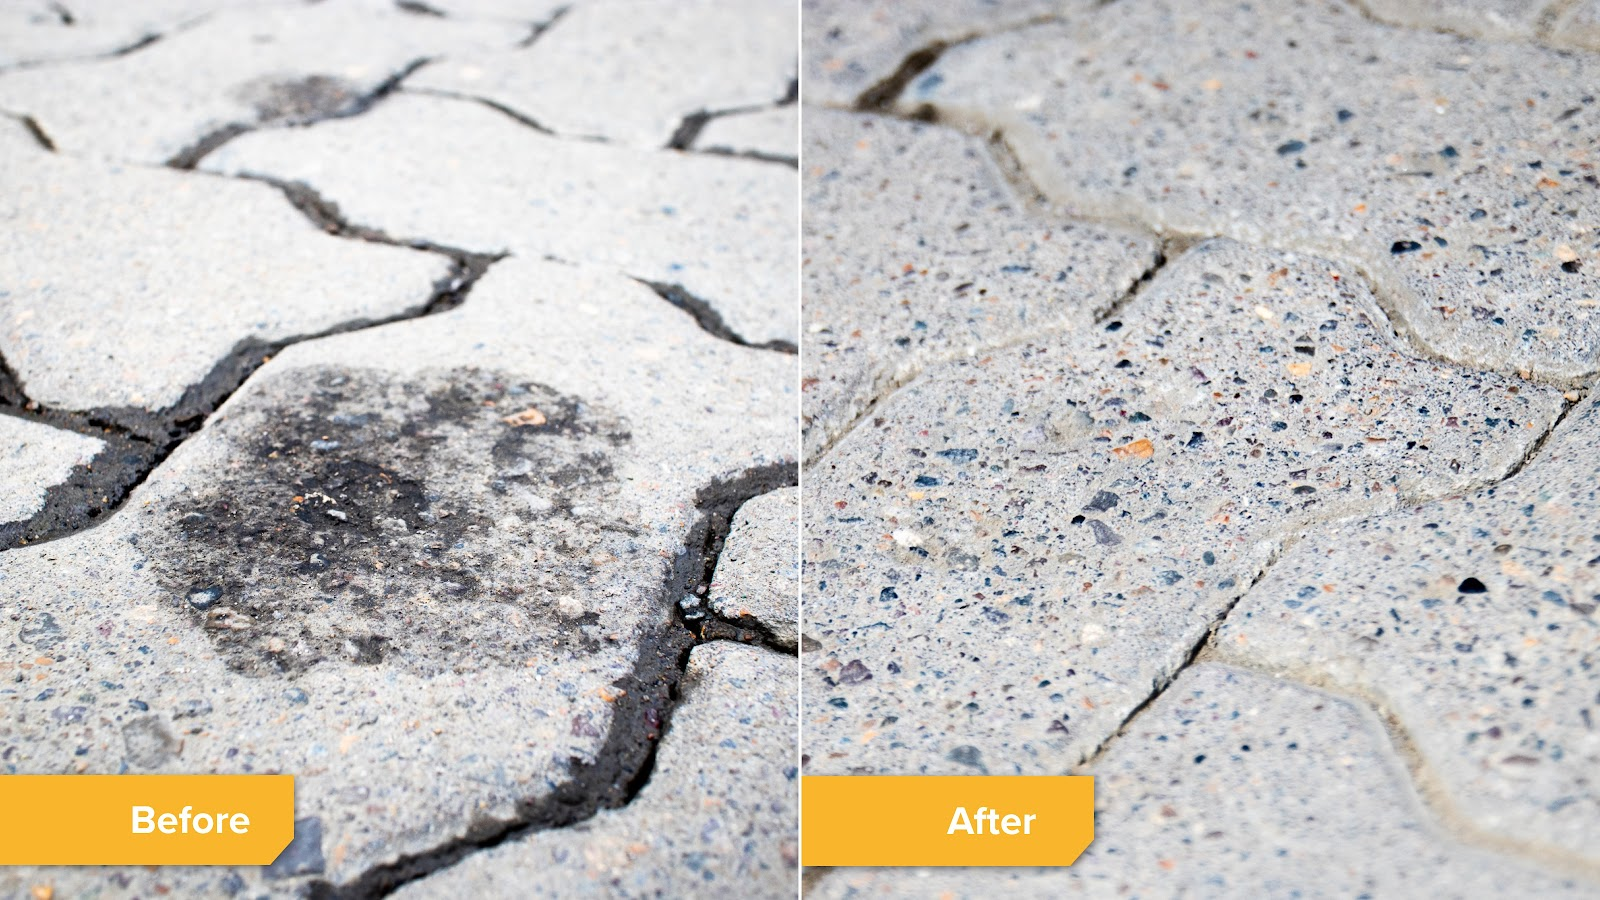 Before and after of an oil spot removal on paving stones.